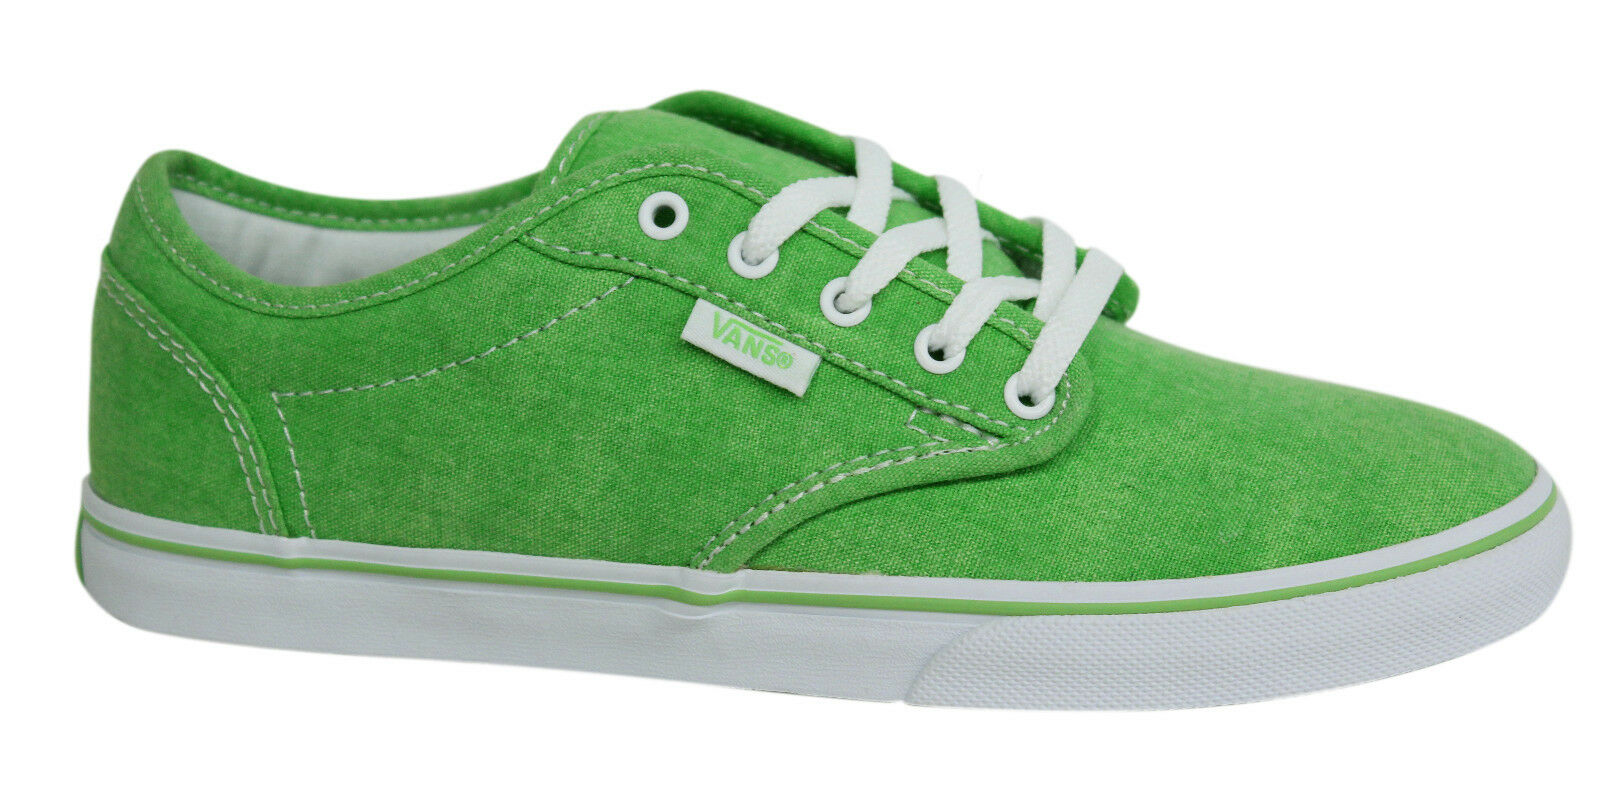 Tennis Vans Atwood Toile Njo6hb Femmes À Vert Bas Chaussures Lacets Aw8vgqPA